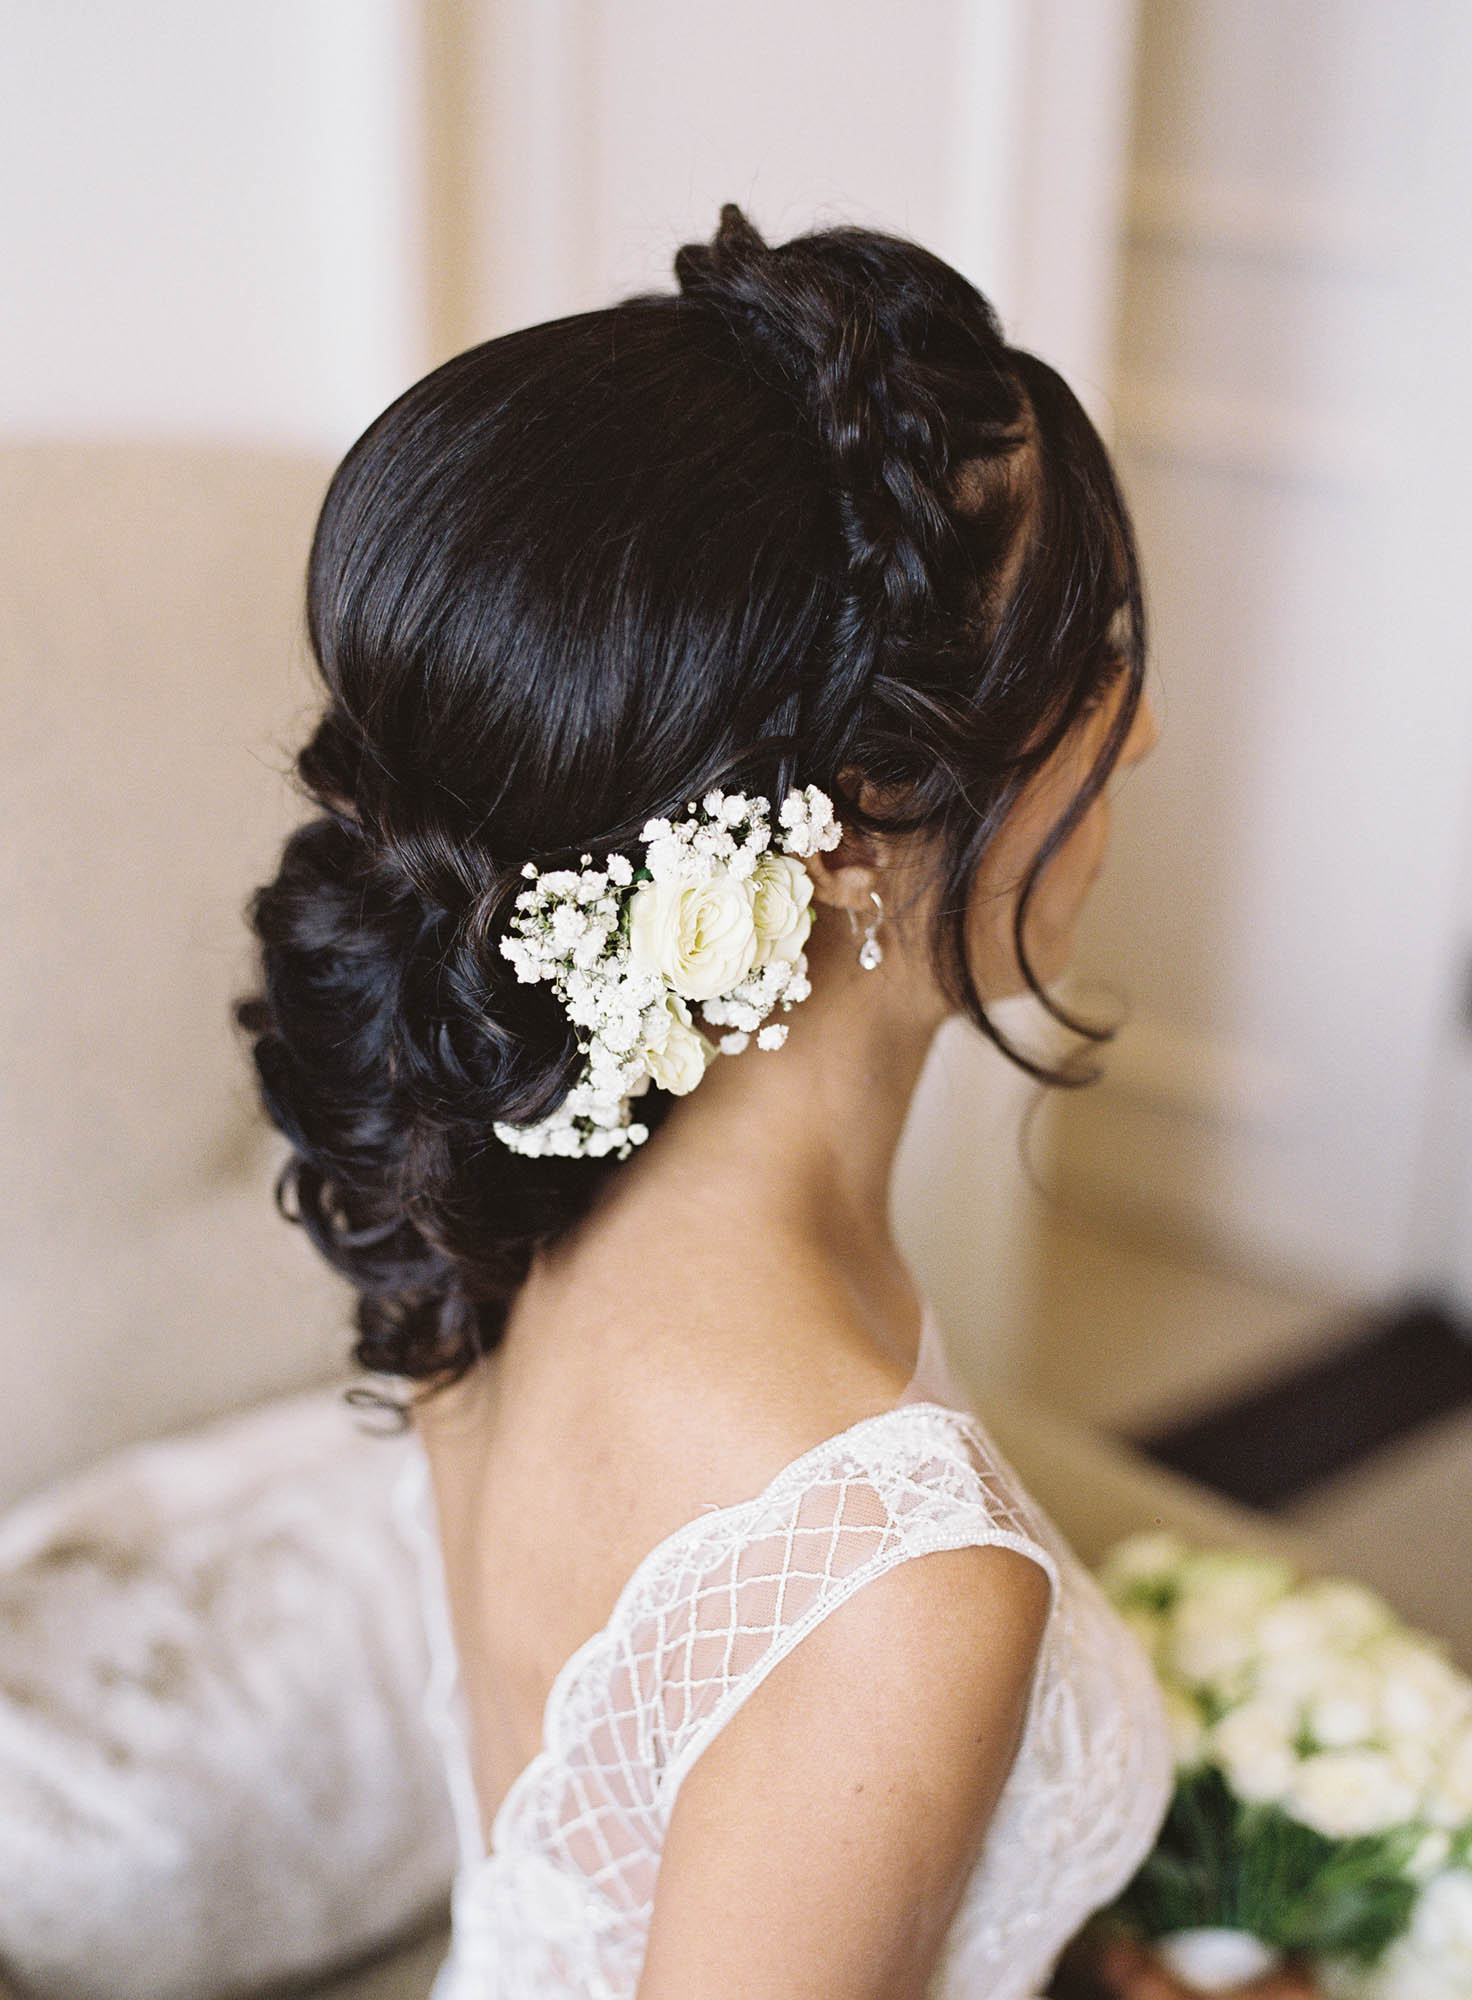 Elegant bridal up do wedding hair with plaits and flowers